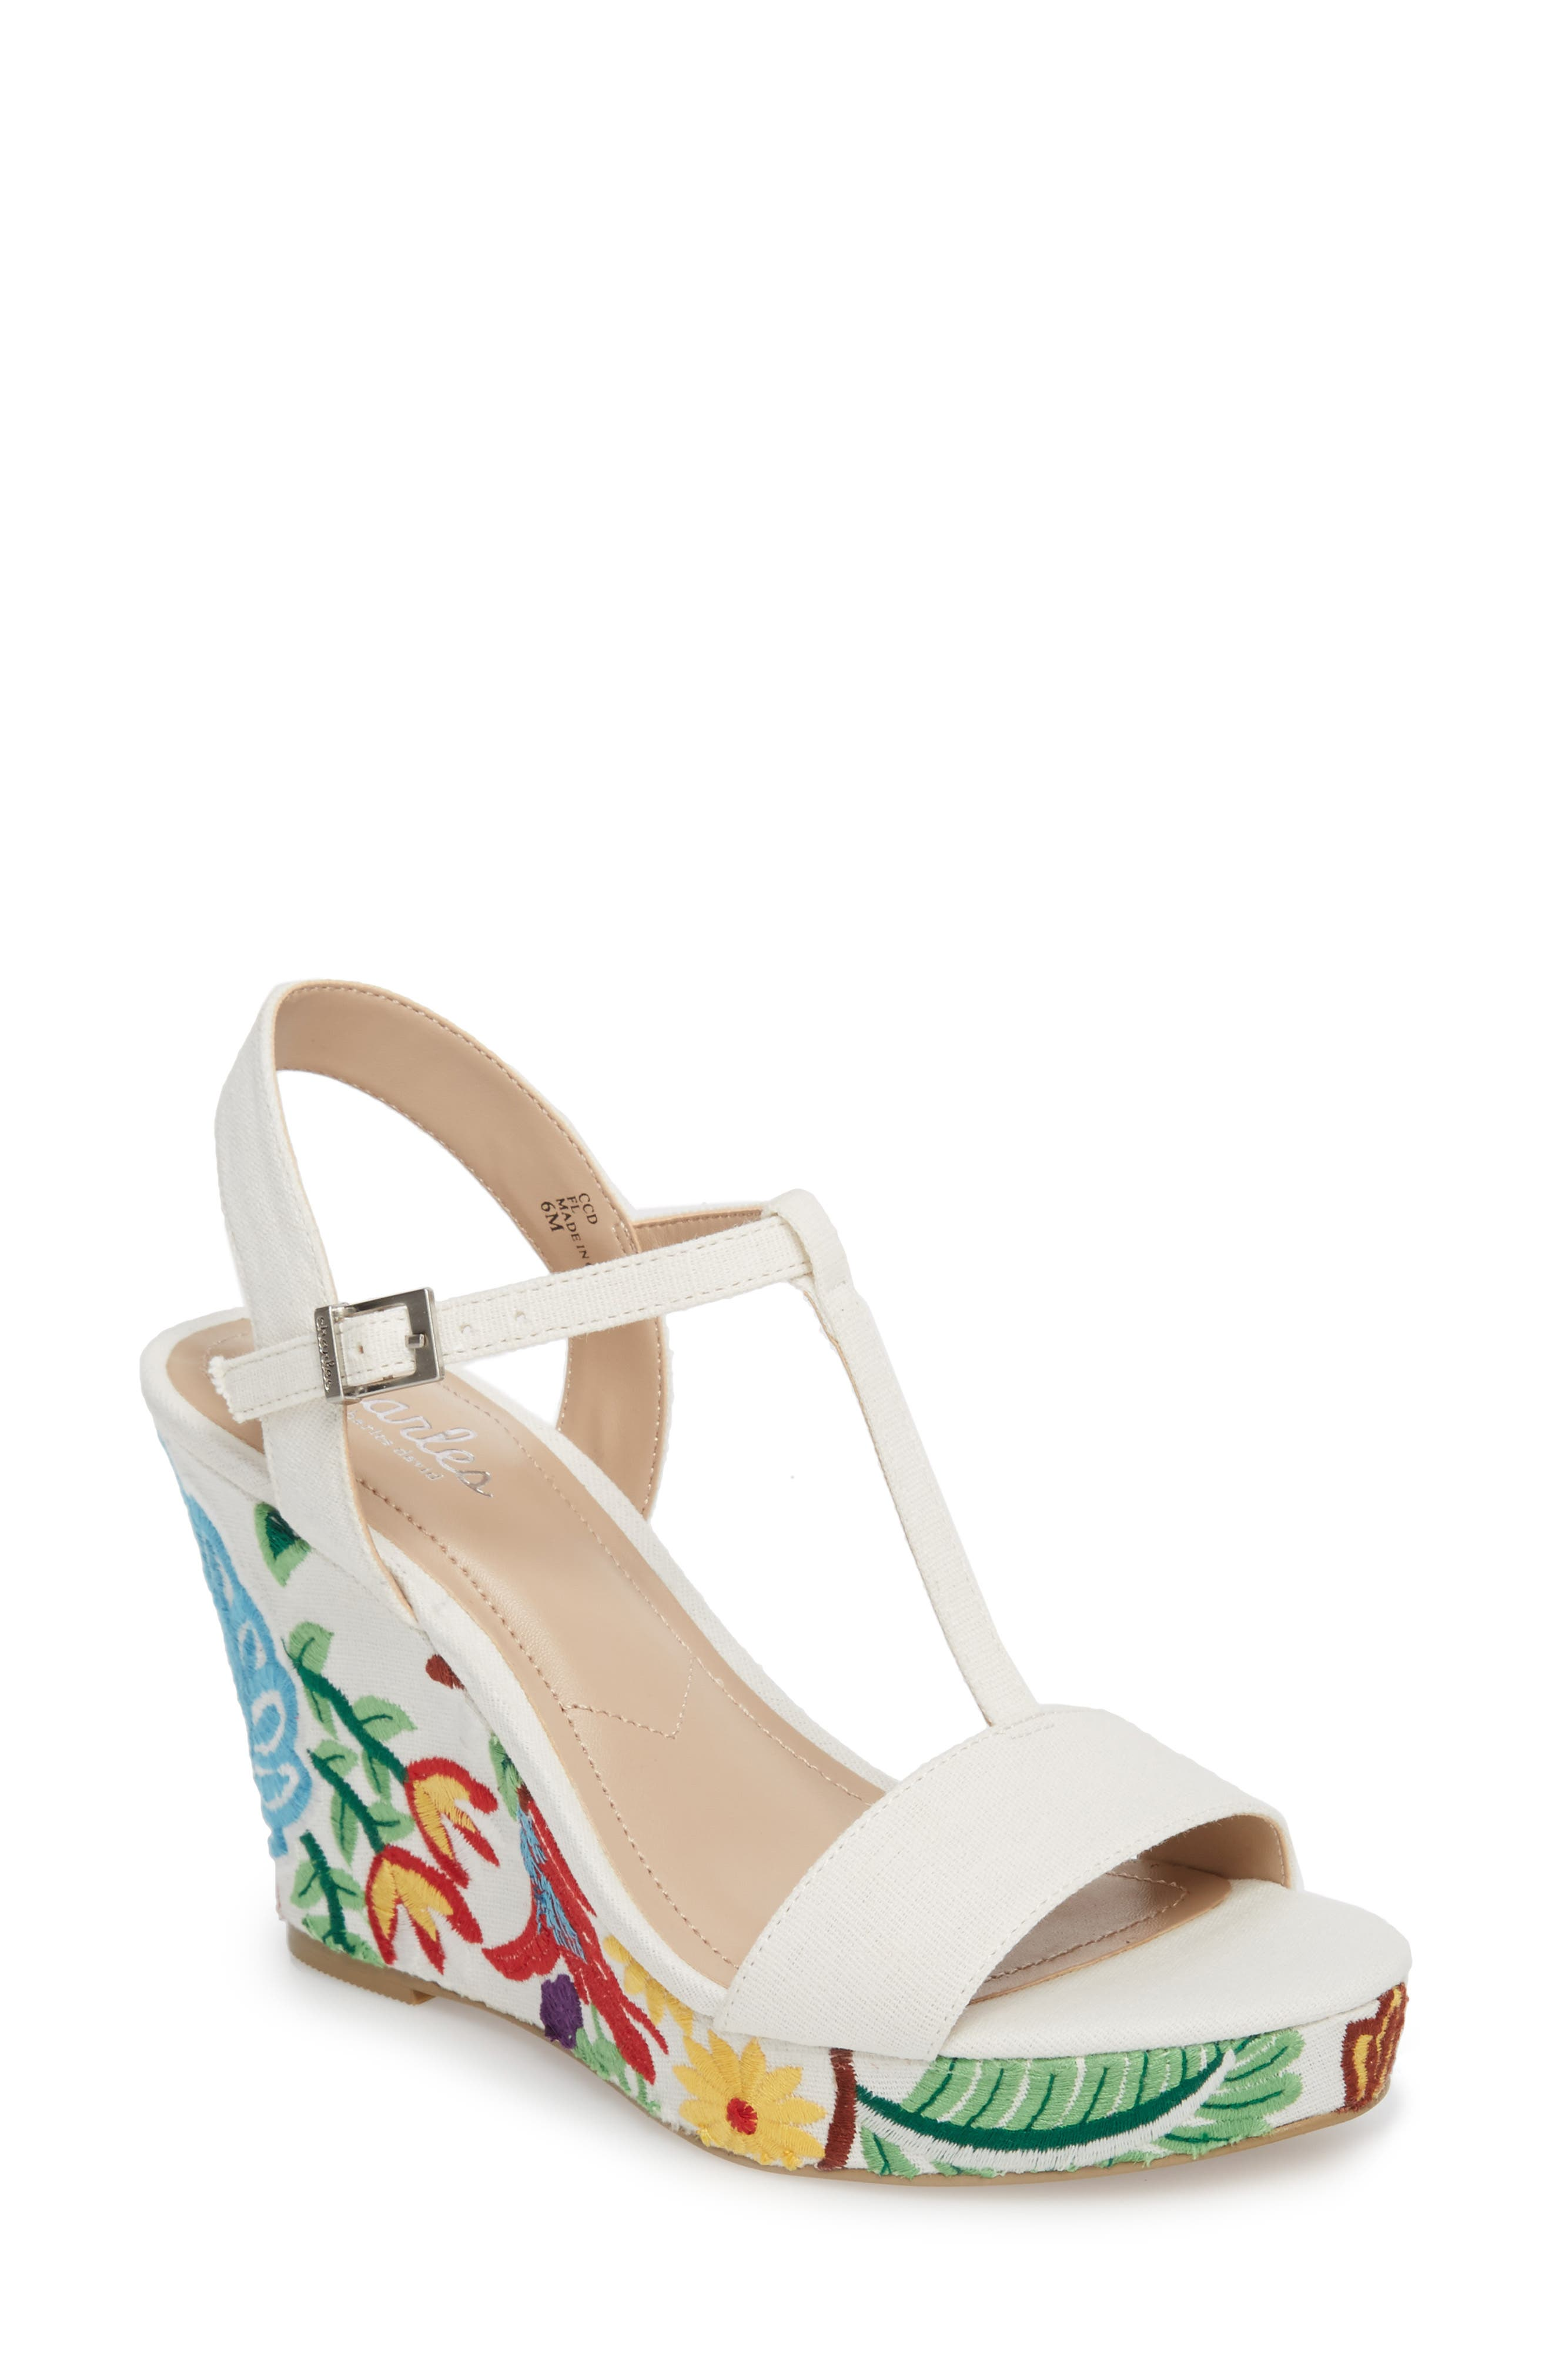 Main Image - Charles by Charles David Laney Embroidered Wedge Sandal (Women)